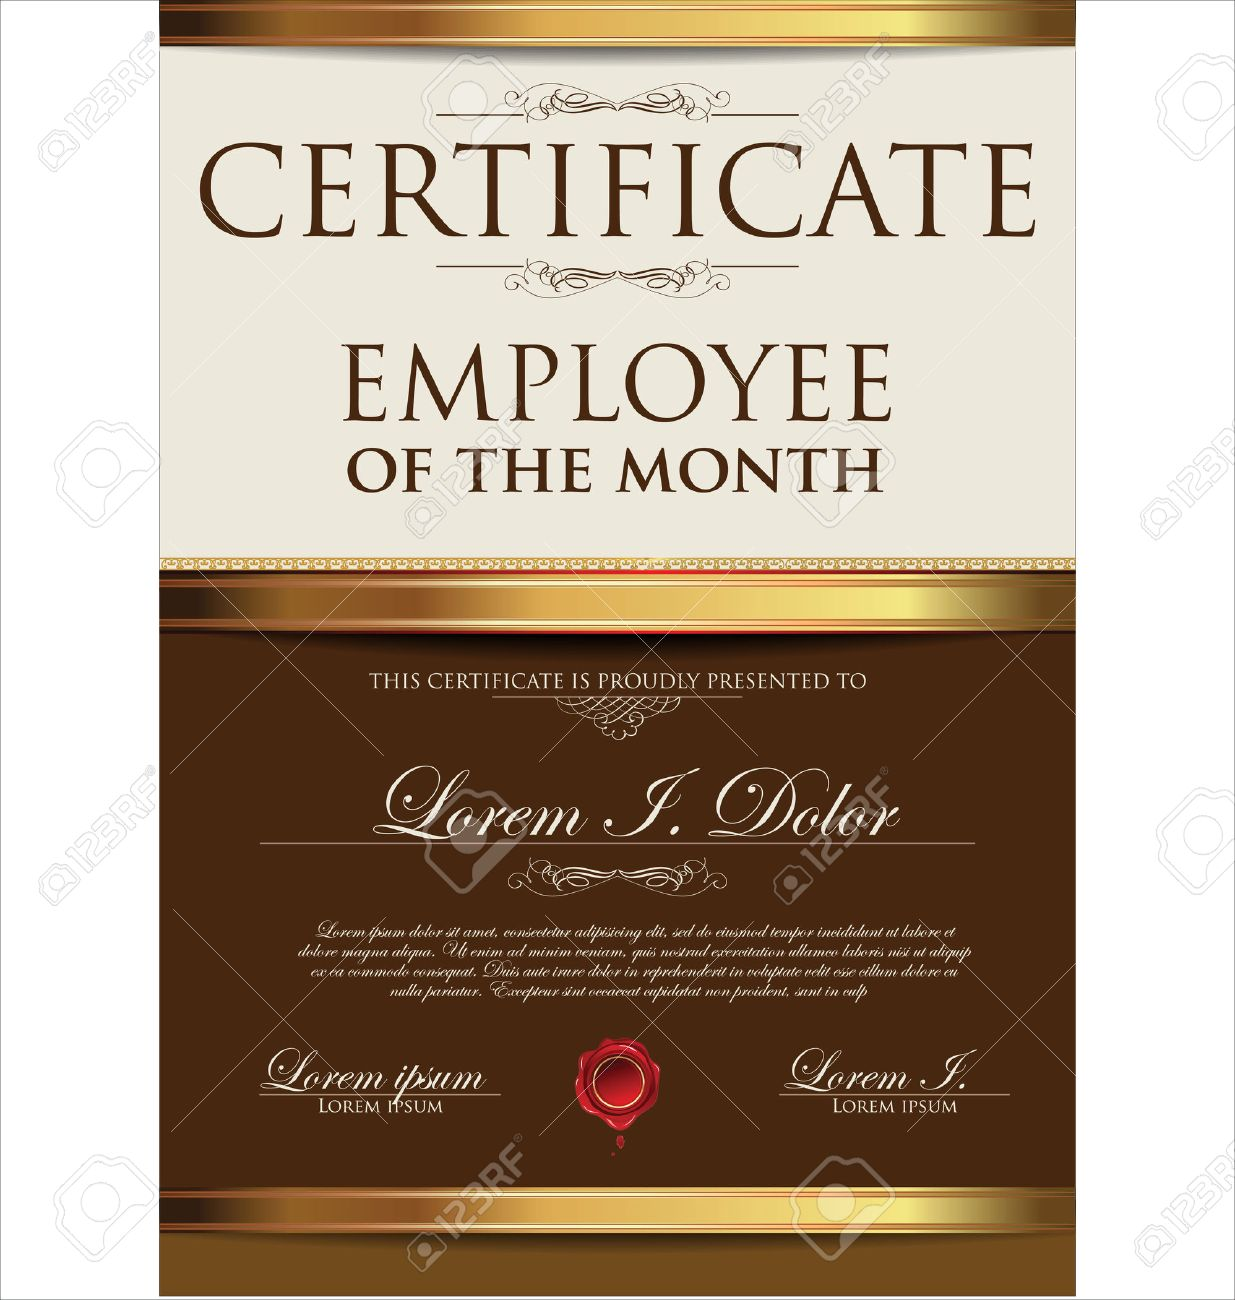 Certificate template employee of the month royalty free cliparts certificate template employee of the month stock vector 26010059 yadclub Image collections